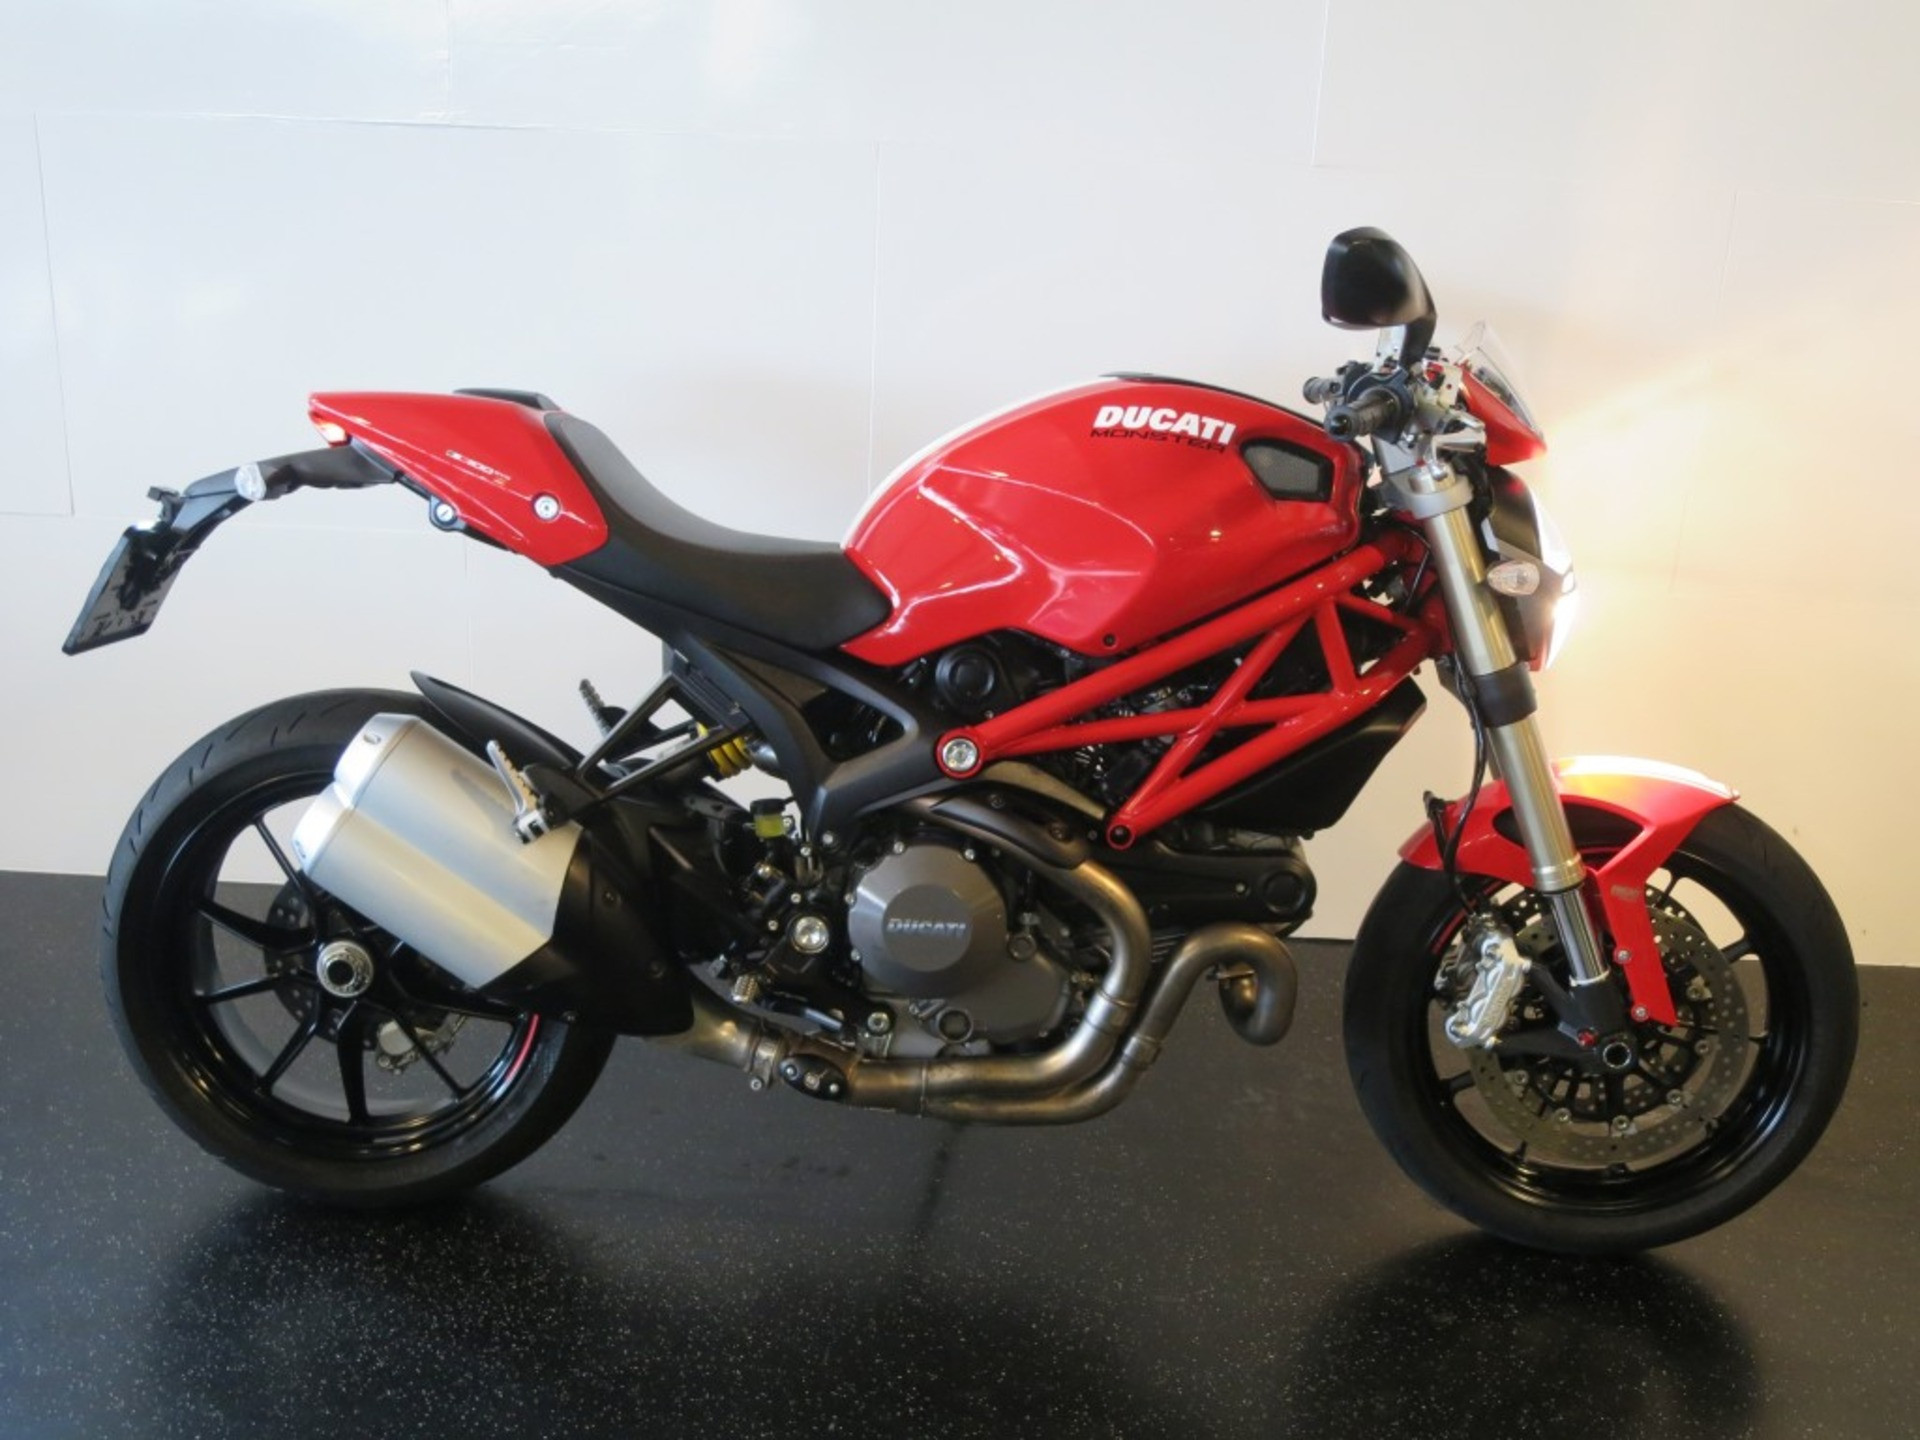 remklauwen ducati monster 1100 2011 2013 201282169 motorparts. Black Bedroom Furniture Sets. Home Design Ideas